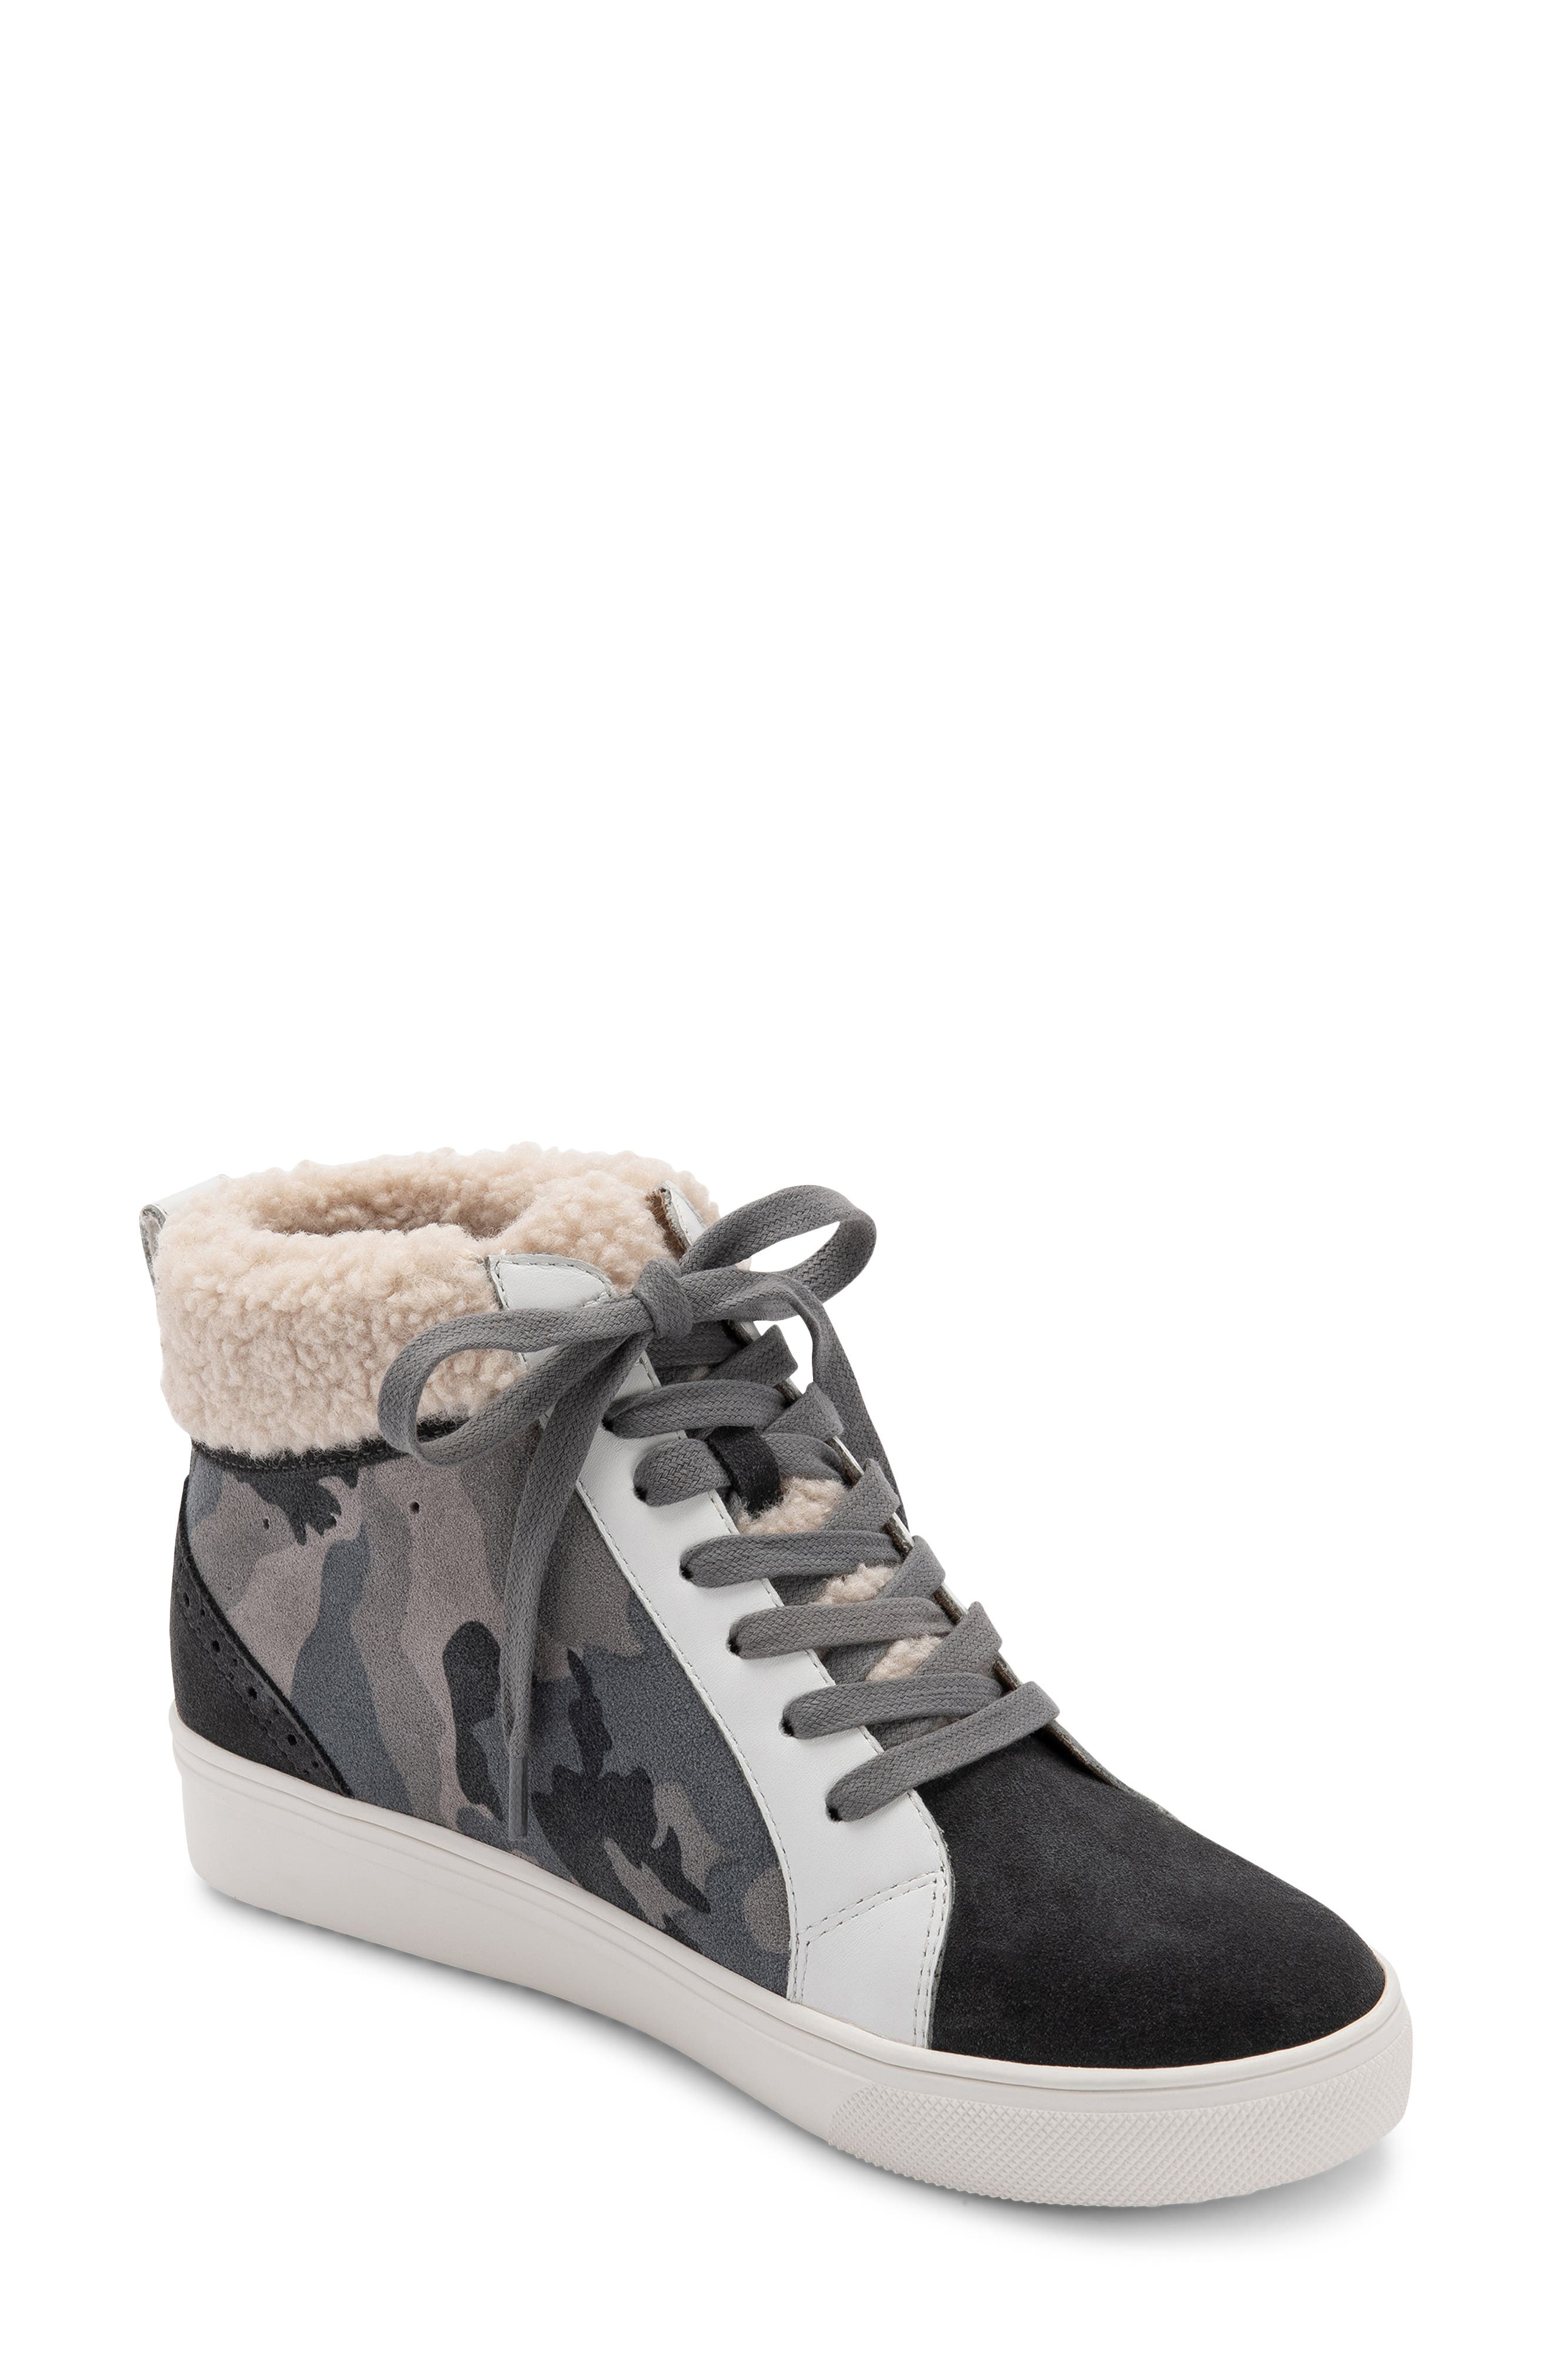 Plush faux fur brings wintry warmth to a street-chic lace-up sneaker with a mid-top profile grounded by a sporty rubber sole. Style Name: Blondo Gulia Waterproof Faux Fur Mid Sneaker. Style Number: 6068117. Available in stores.